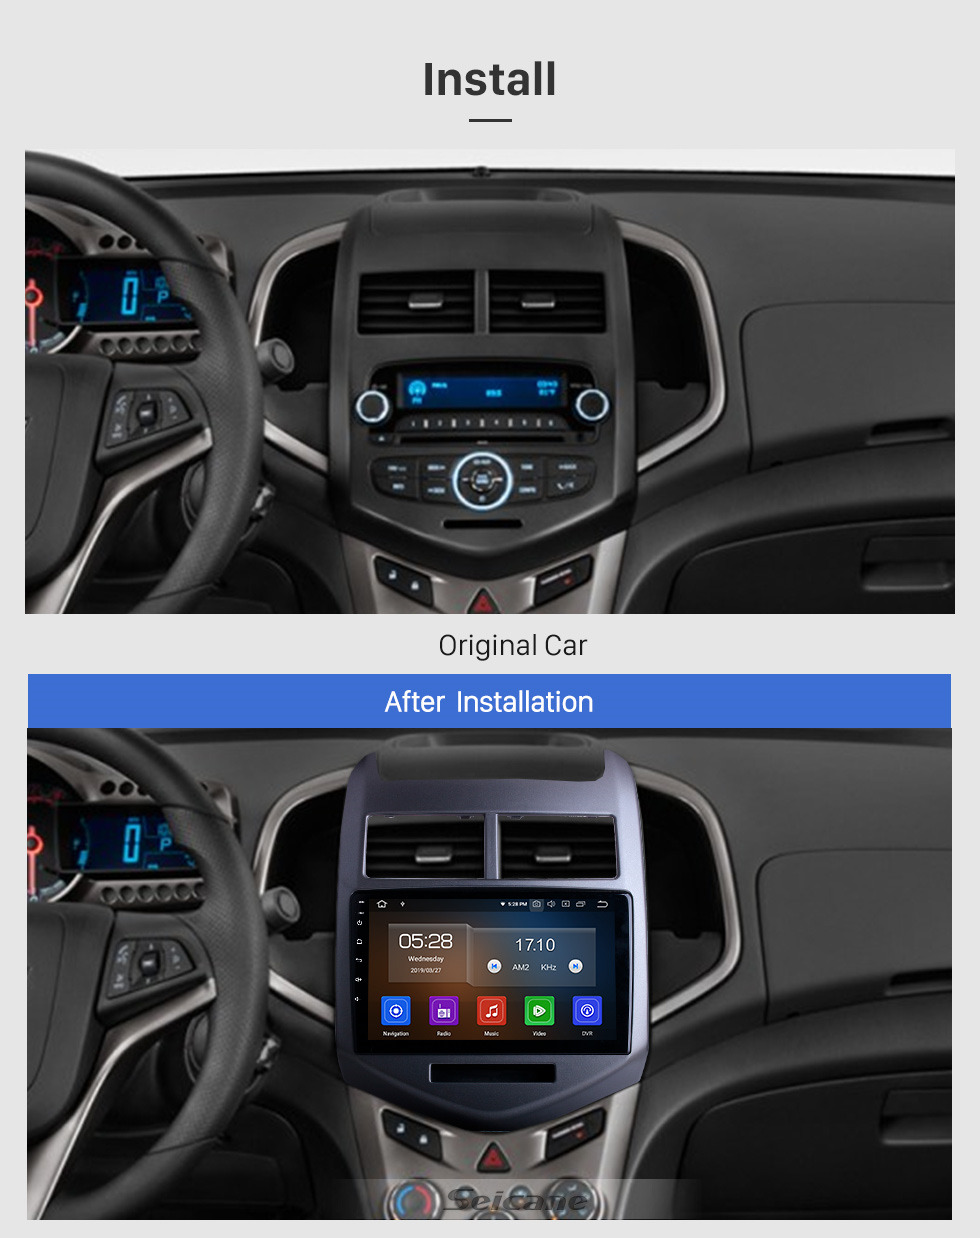 Seicane 2010 2011 2012 2013  Chevy Chevrolet AVEO Android 9.0 Radio GPS Navigation Bluetooth HD TouchScreen WiFi Spiegel-Verbindungs-Rückansicht Unterstützung DVR 1080P Video OBD